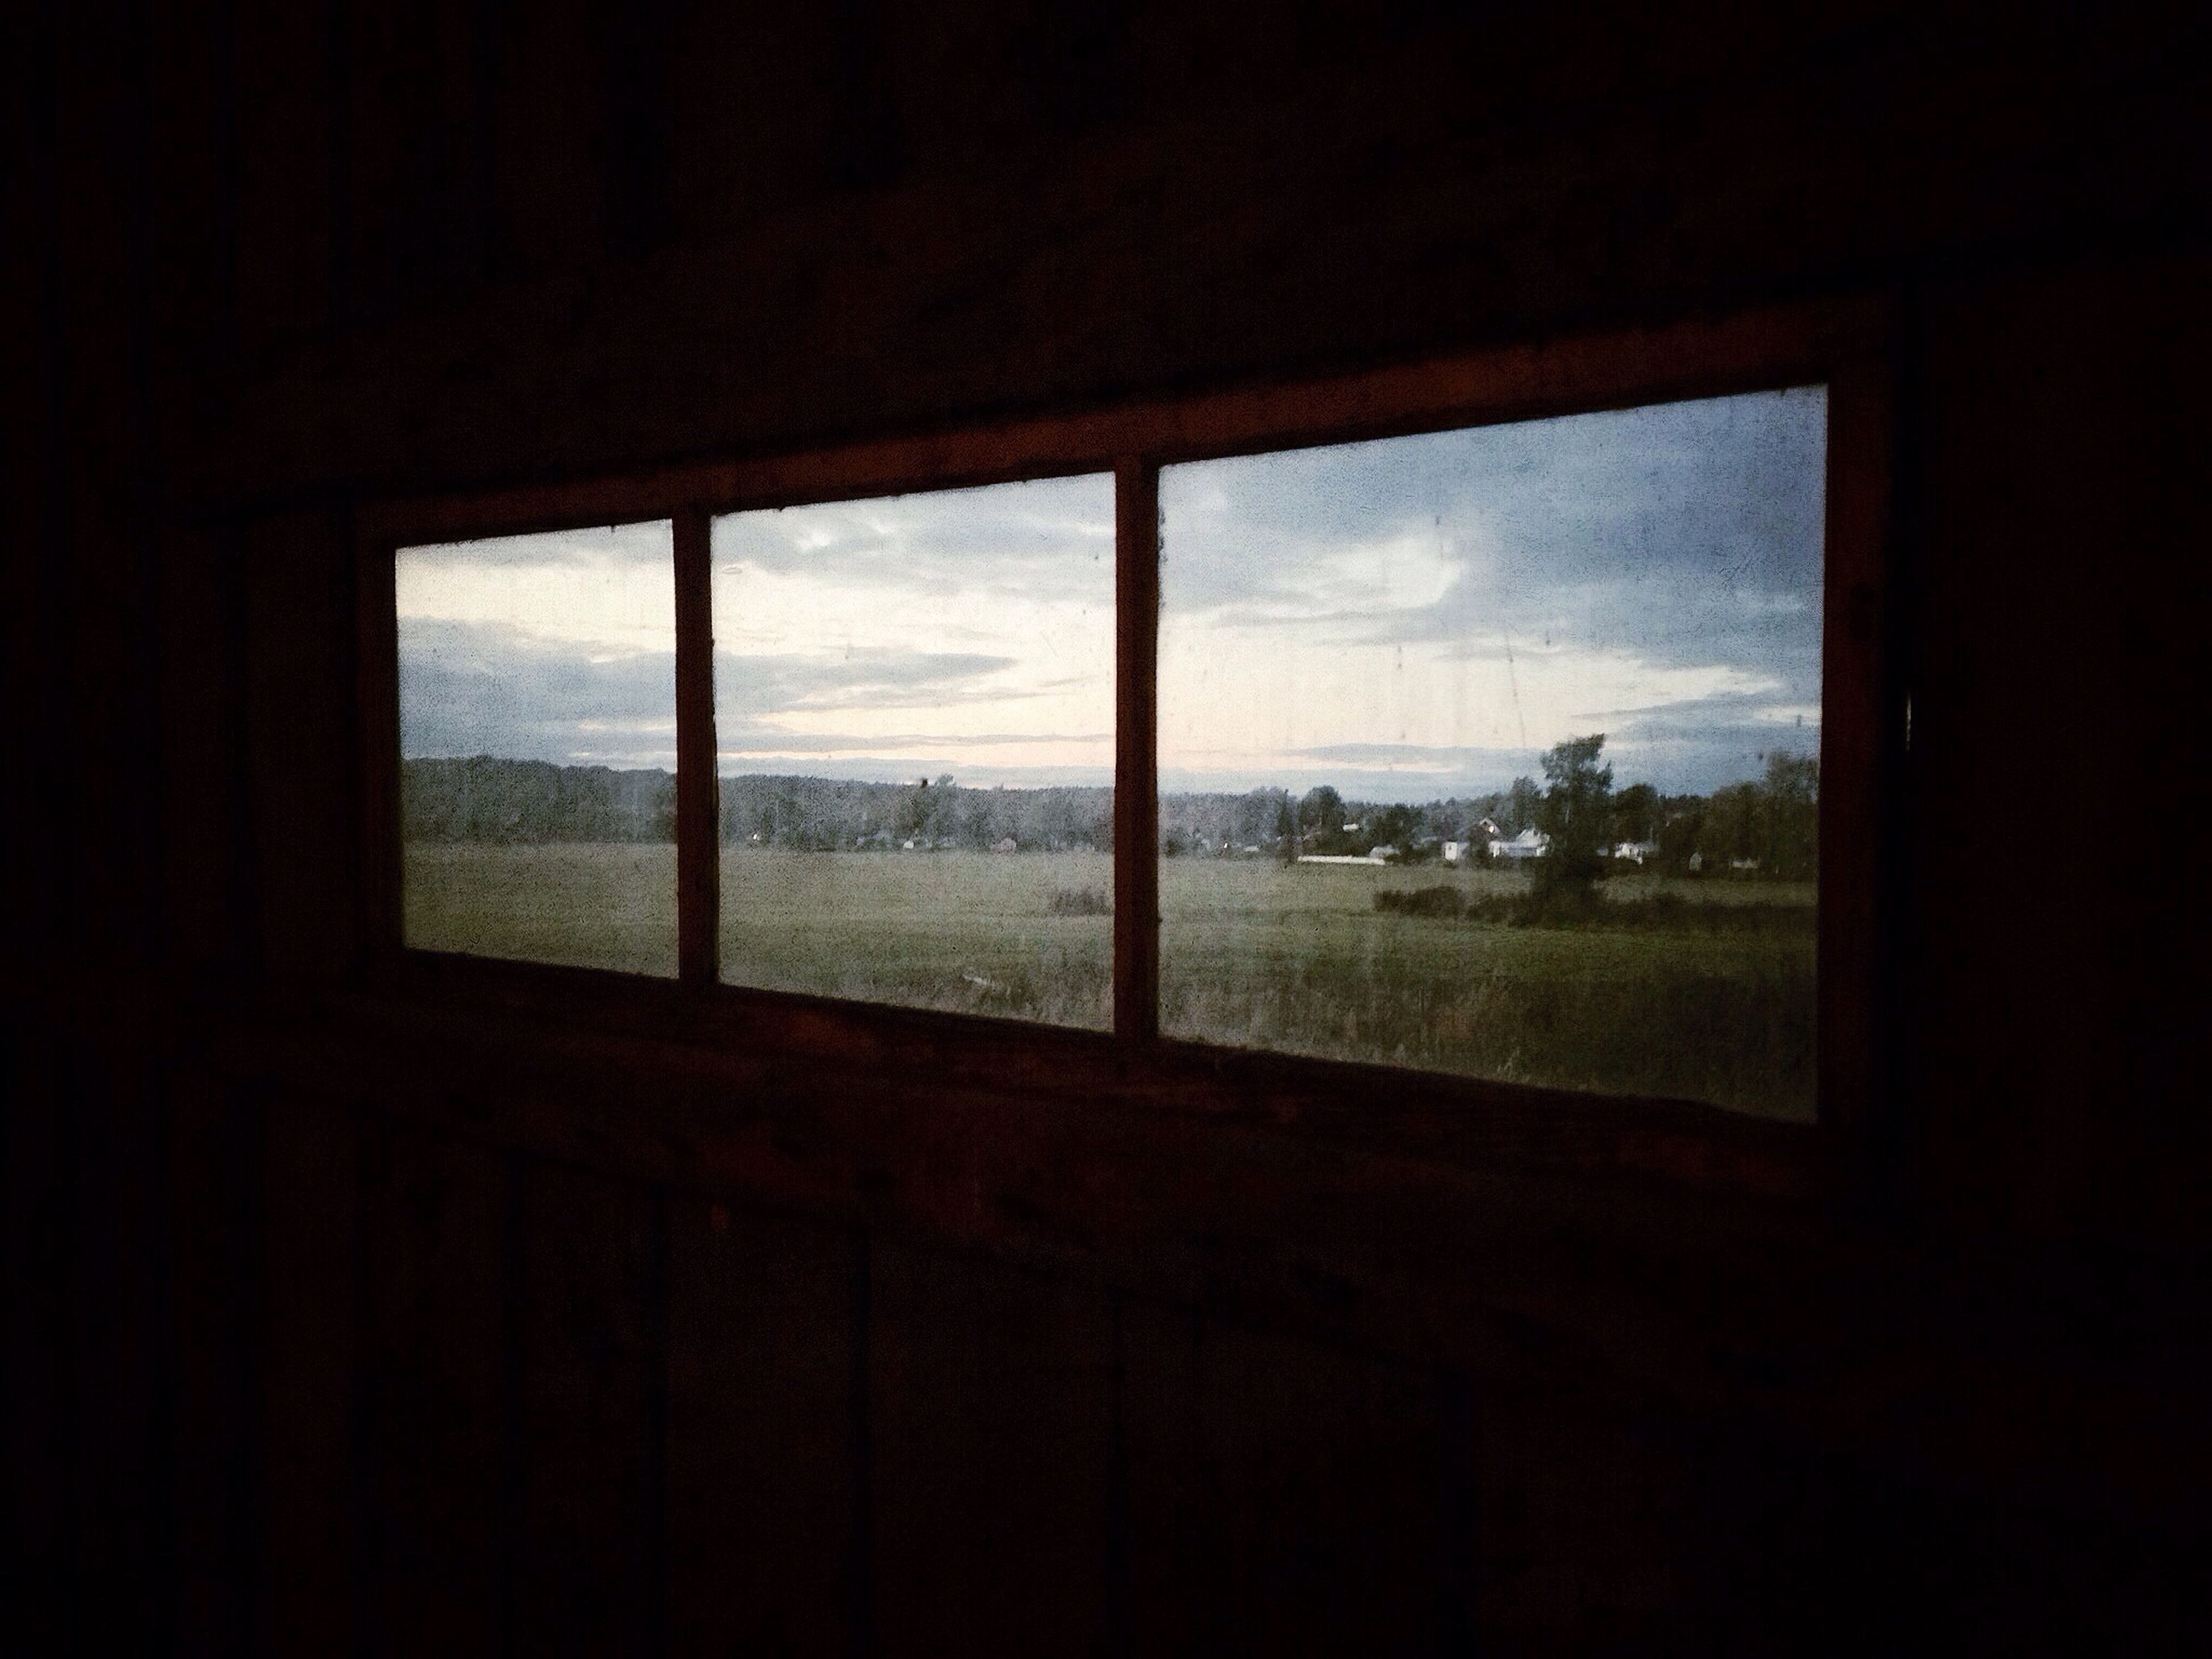 window, indoors, glass - material, transparent, sky, looking through window, built structure, architecture, tree, silhouette, glass, house, weather, cloud - sky, dark, day, nature, no people, landscape, building exterior